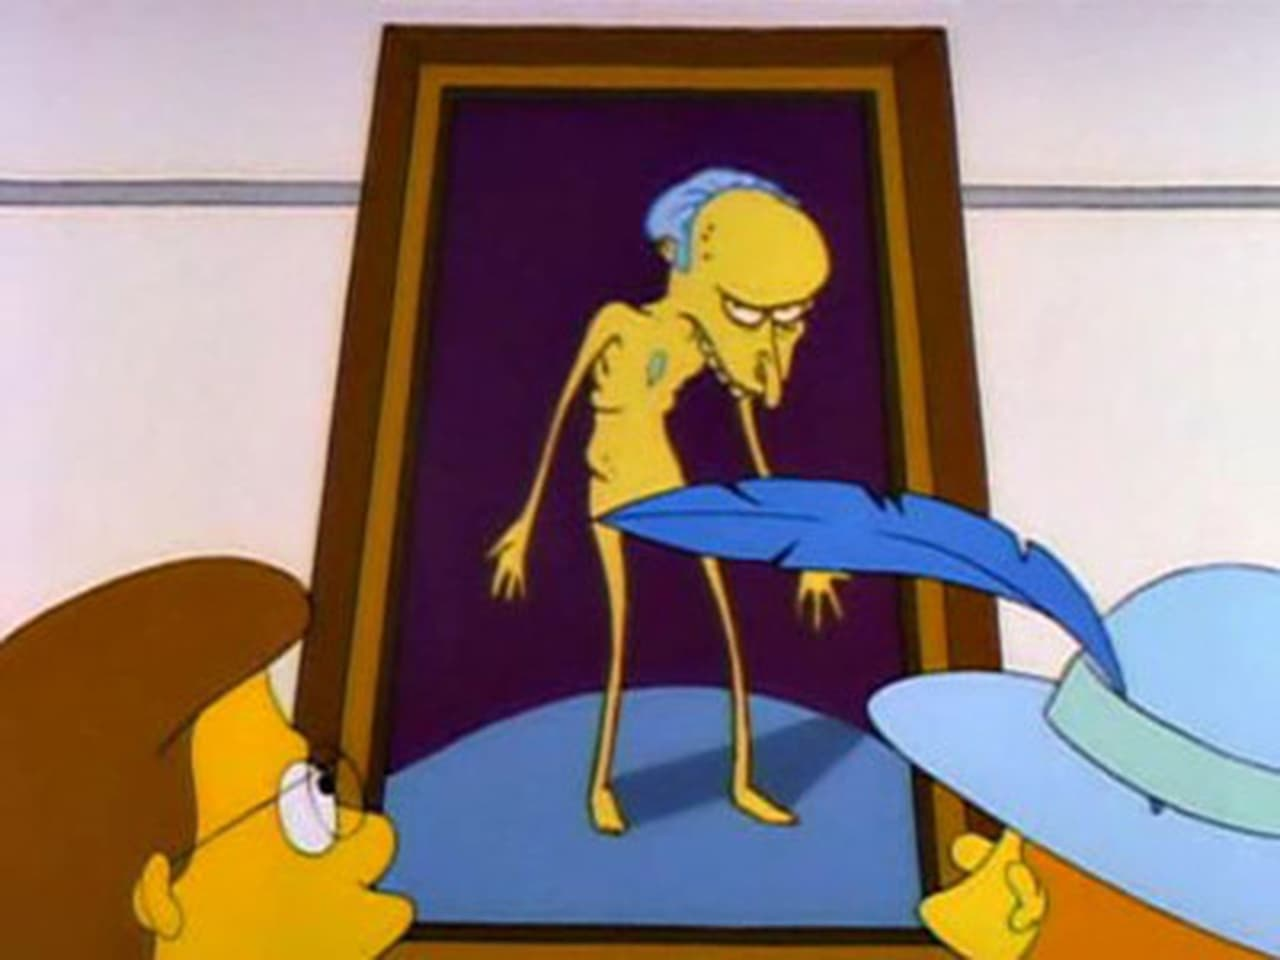 The Simpsons - Season 2 Episode 18 : Brush with Greatness